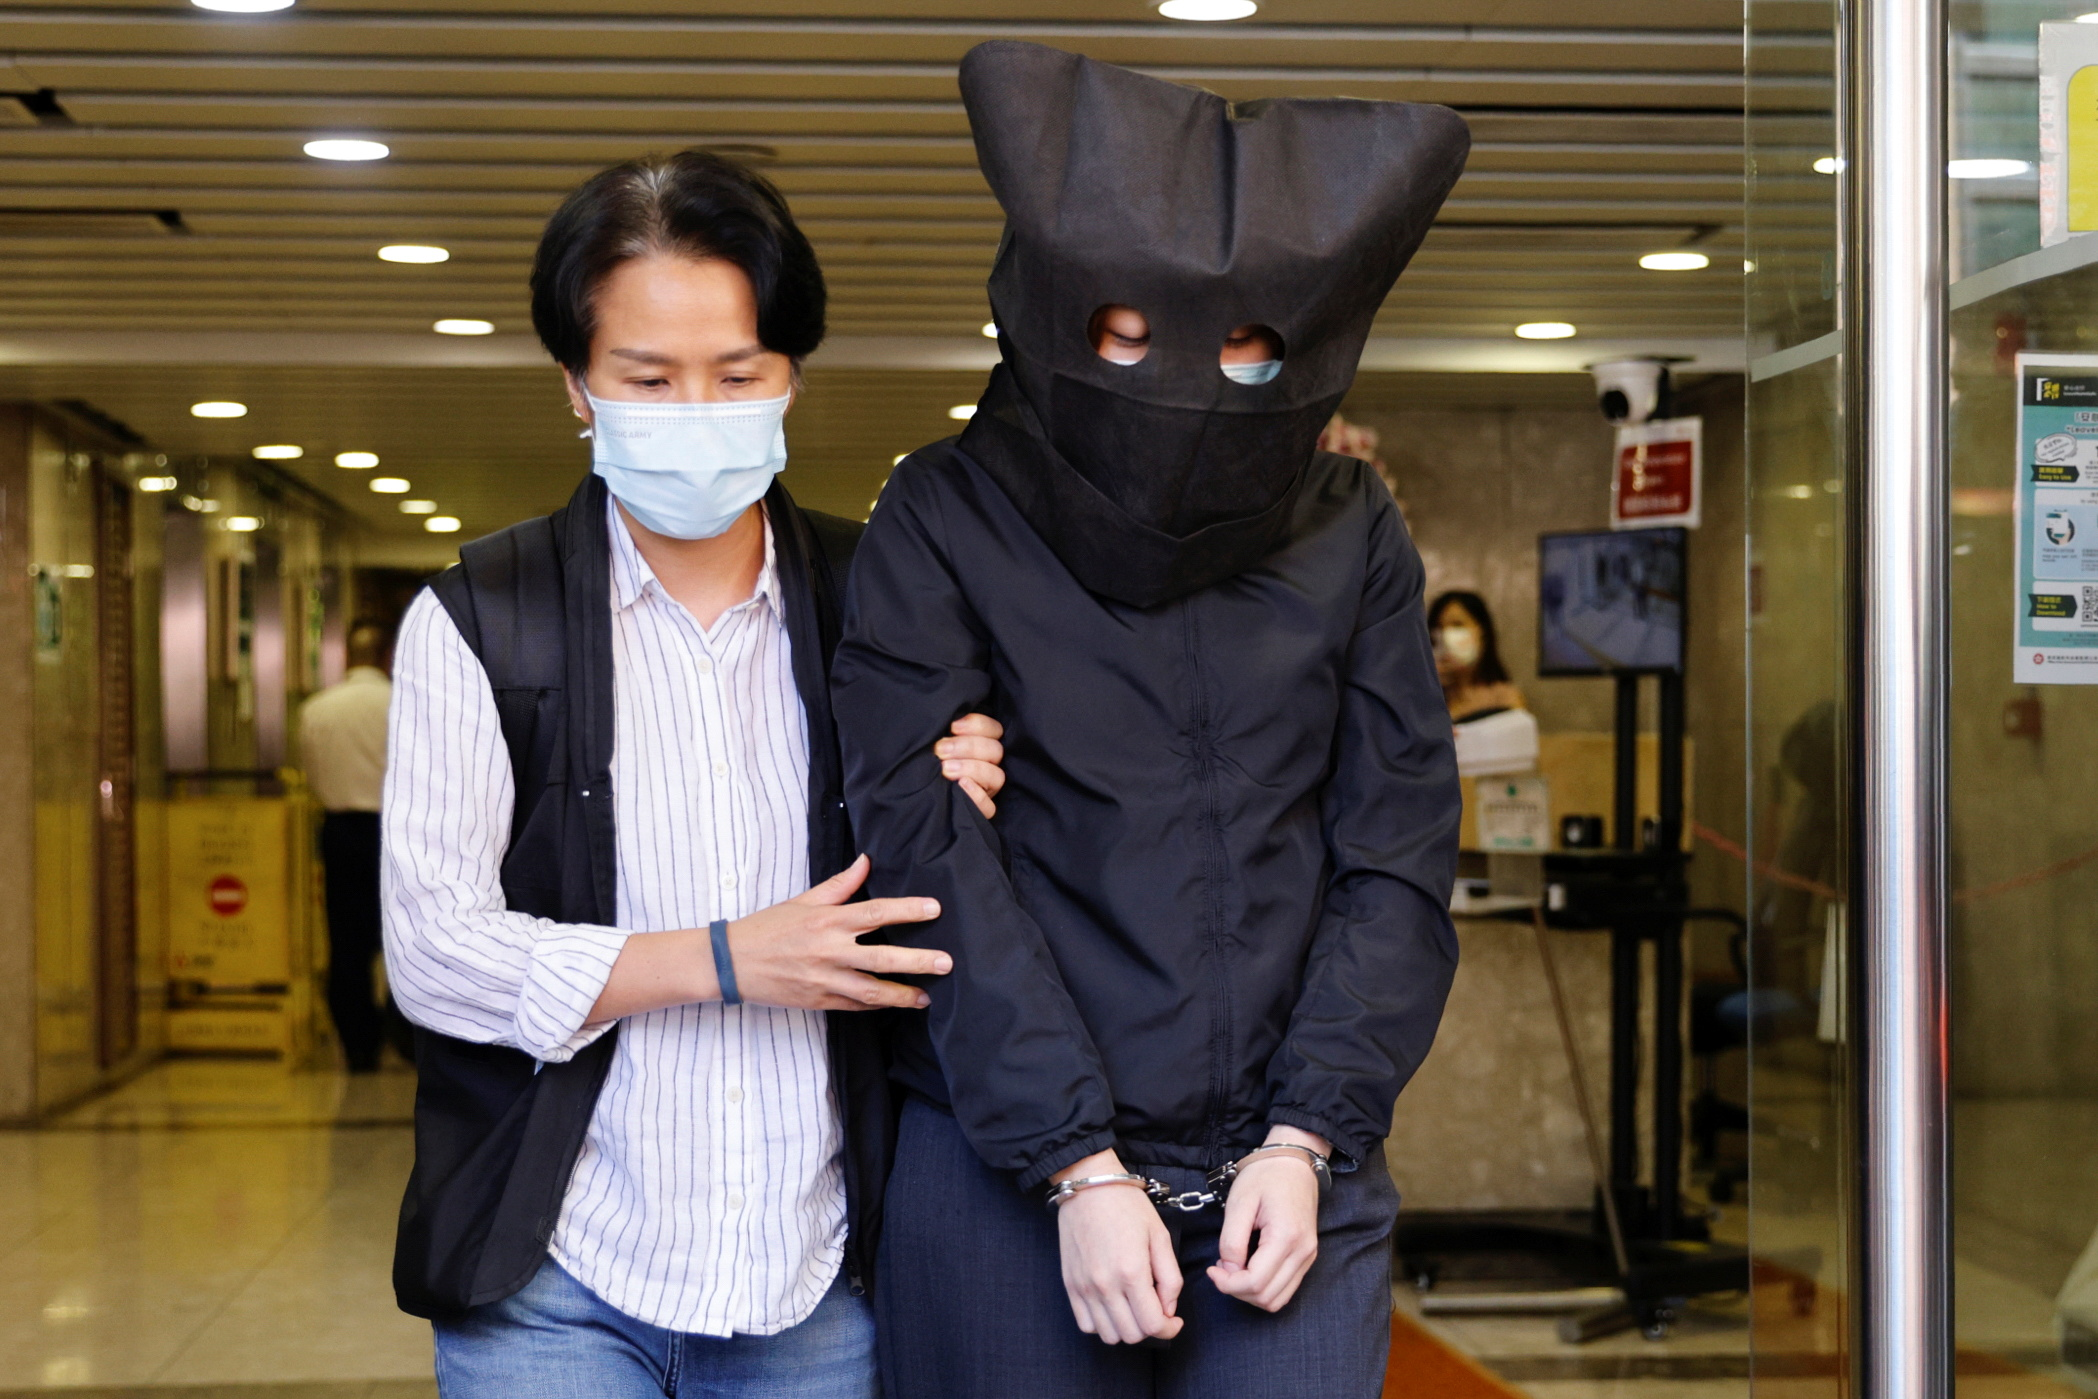 A police officer escorts one of five suspects, detained on suspicion of publishing and distributing seditious material, in Hong Kong, China July 22, 2021. REUTERS/Tyrone Siu